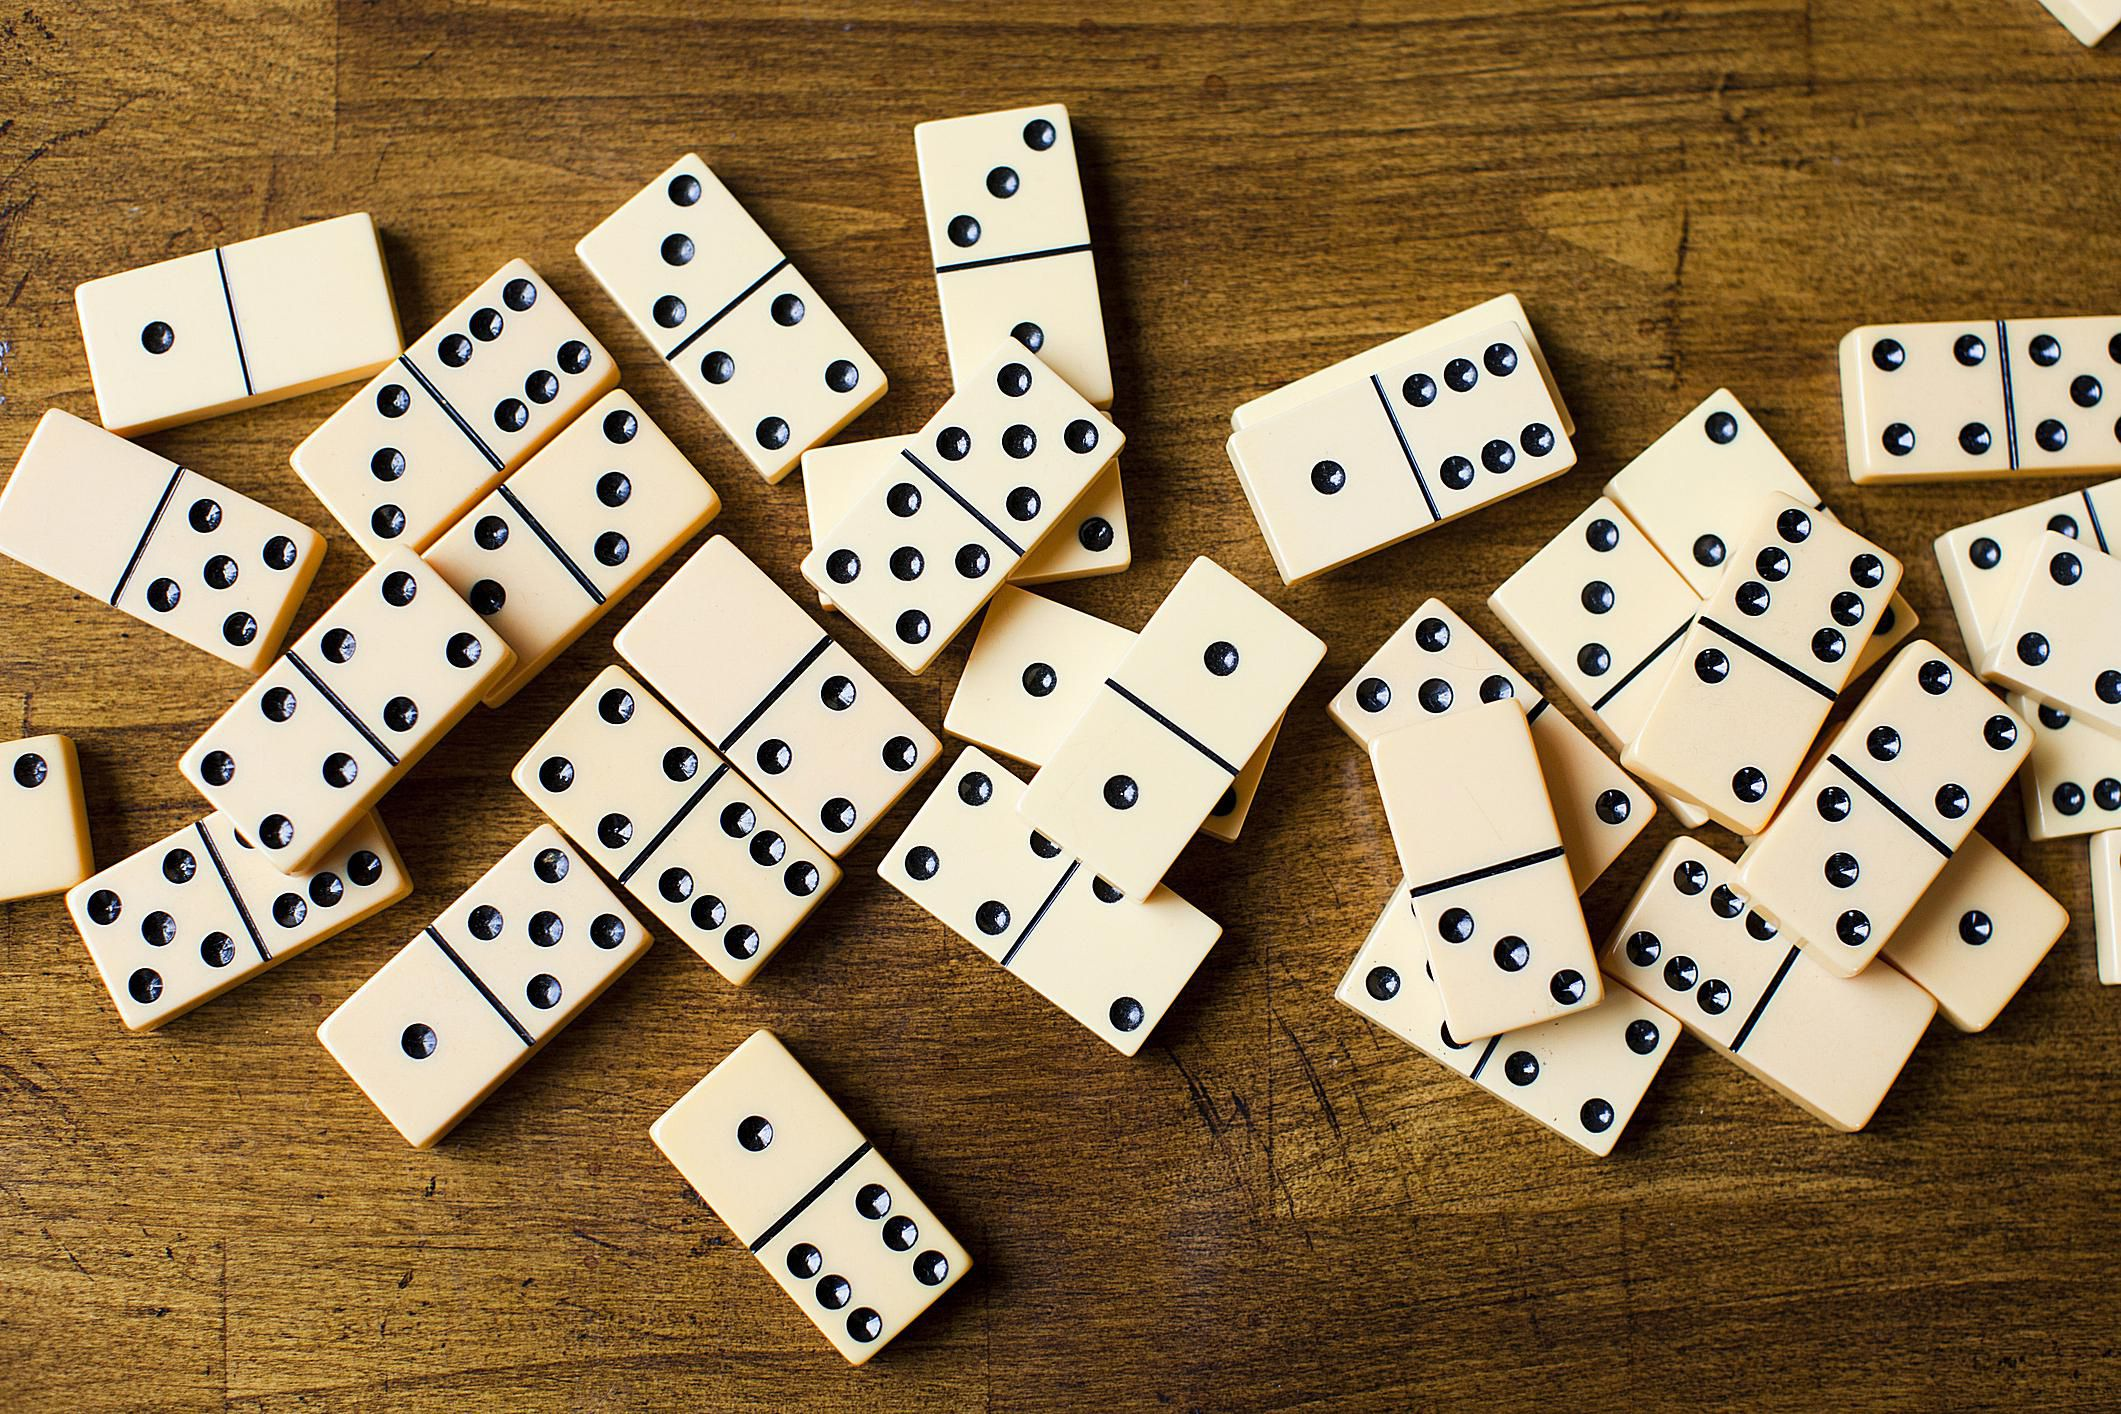 Jamaican Domino Rules | About Jamaica